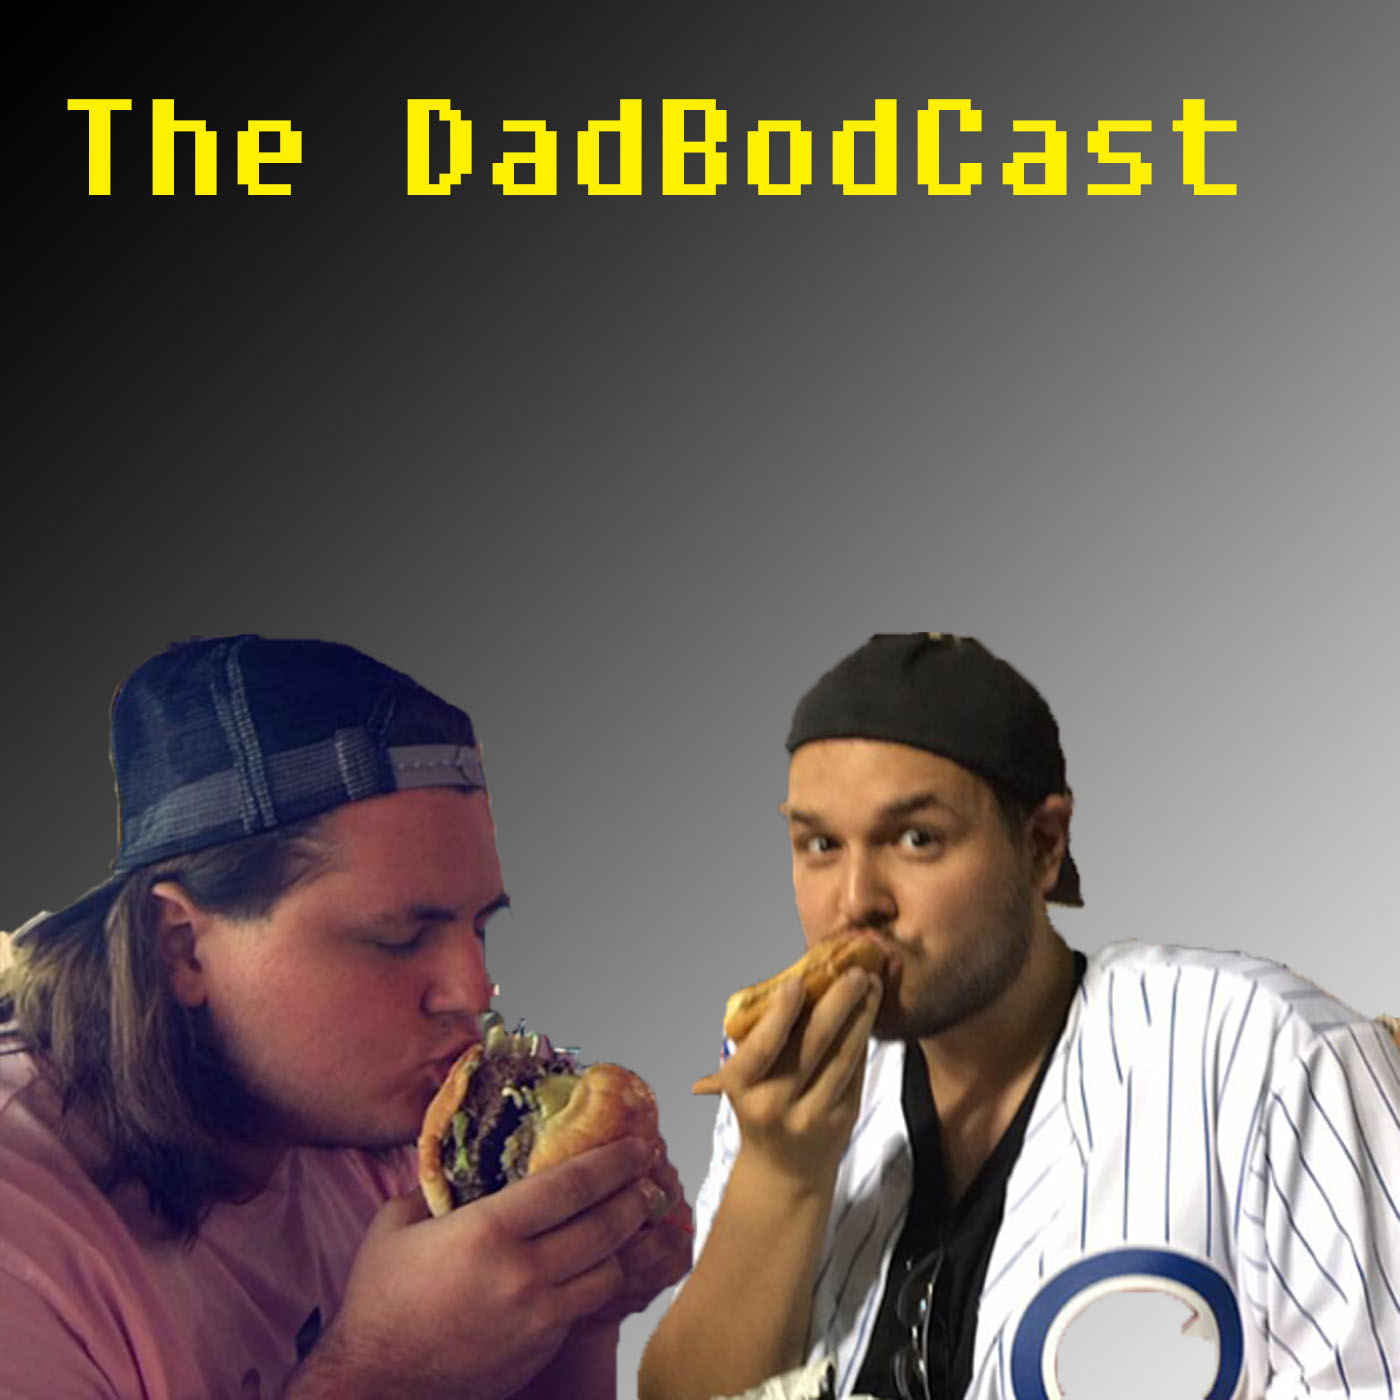 The DadBodCast